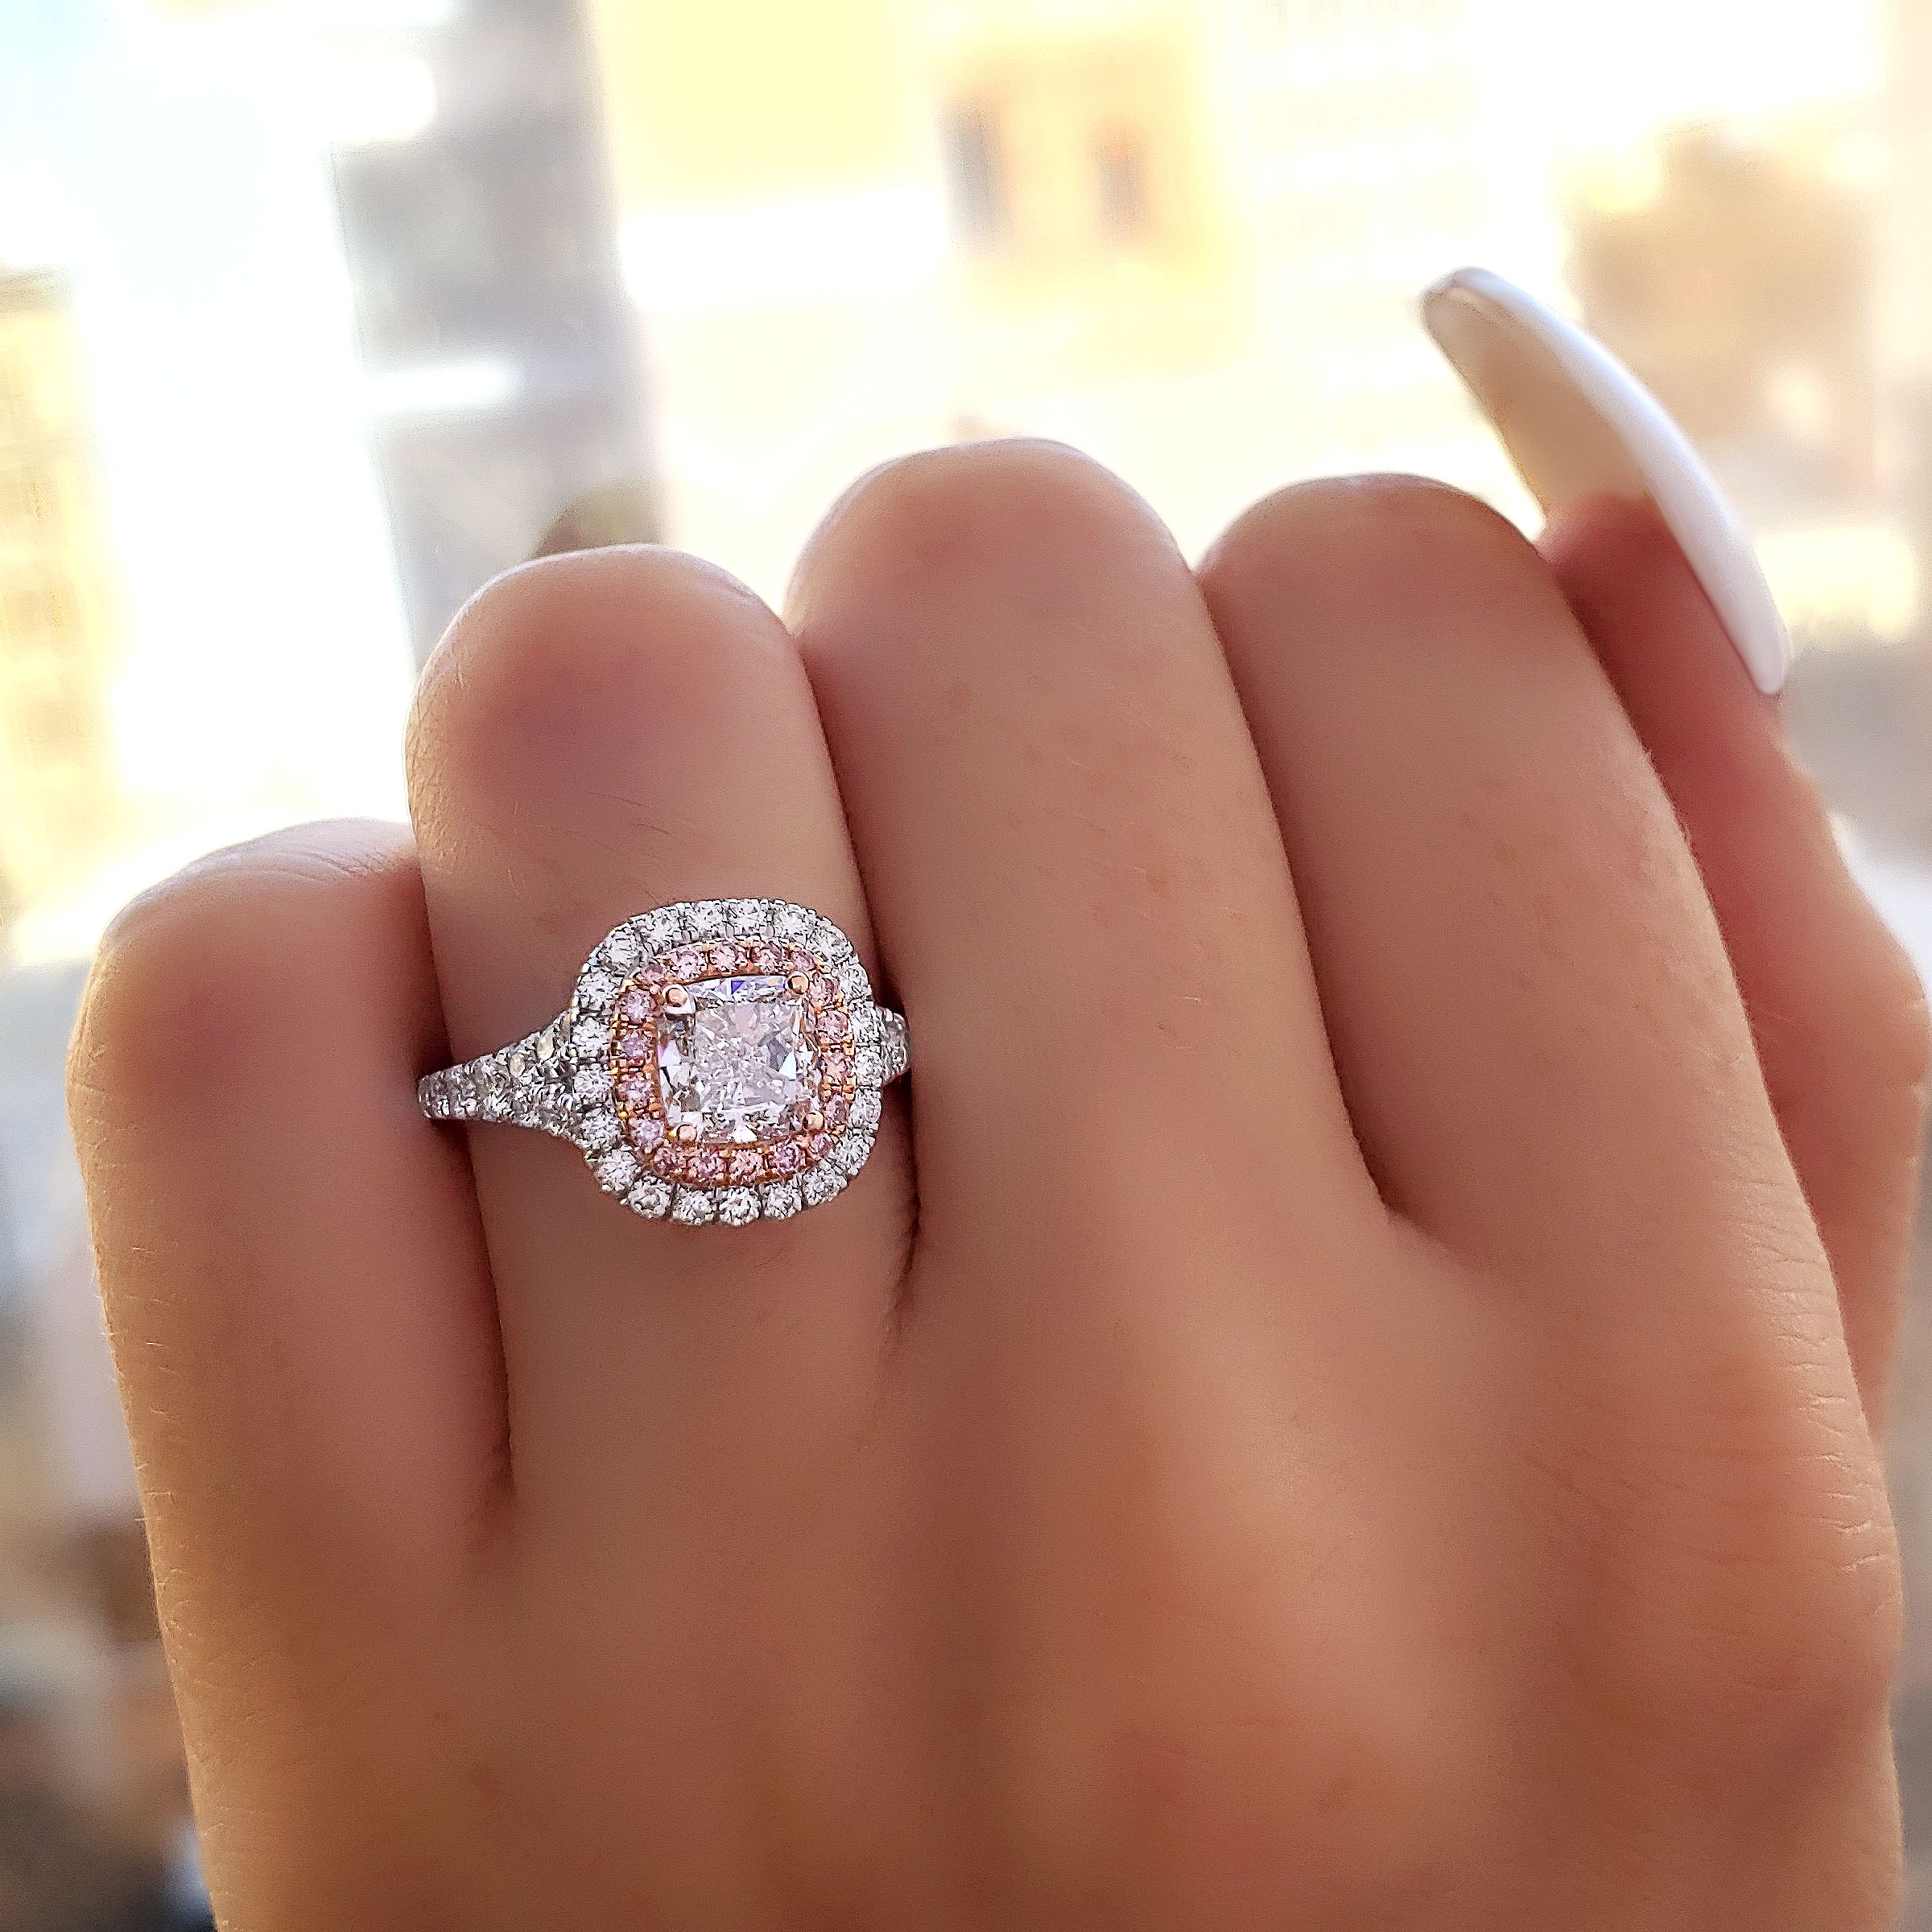 Double Halo Split Shank w/ Intense Pink Diamonds Engagement Ring